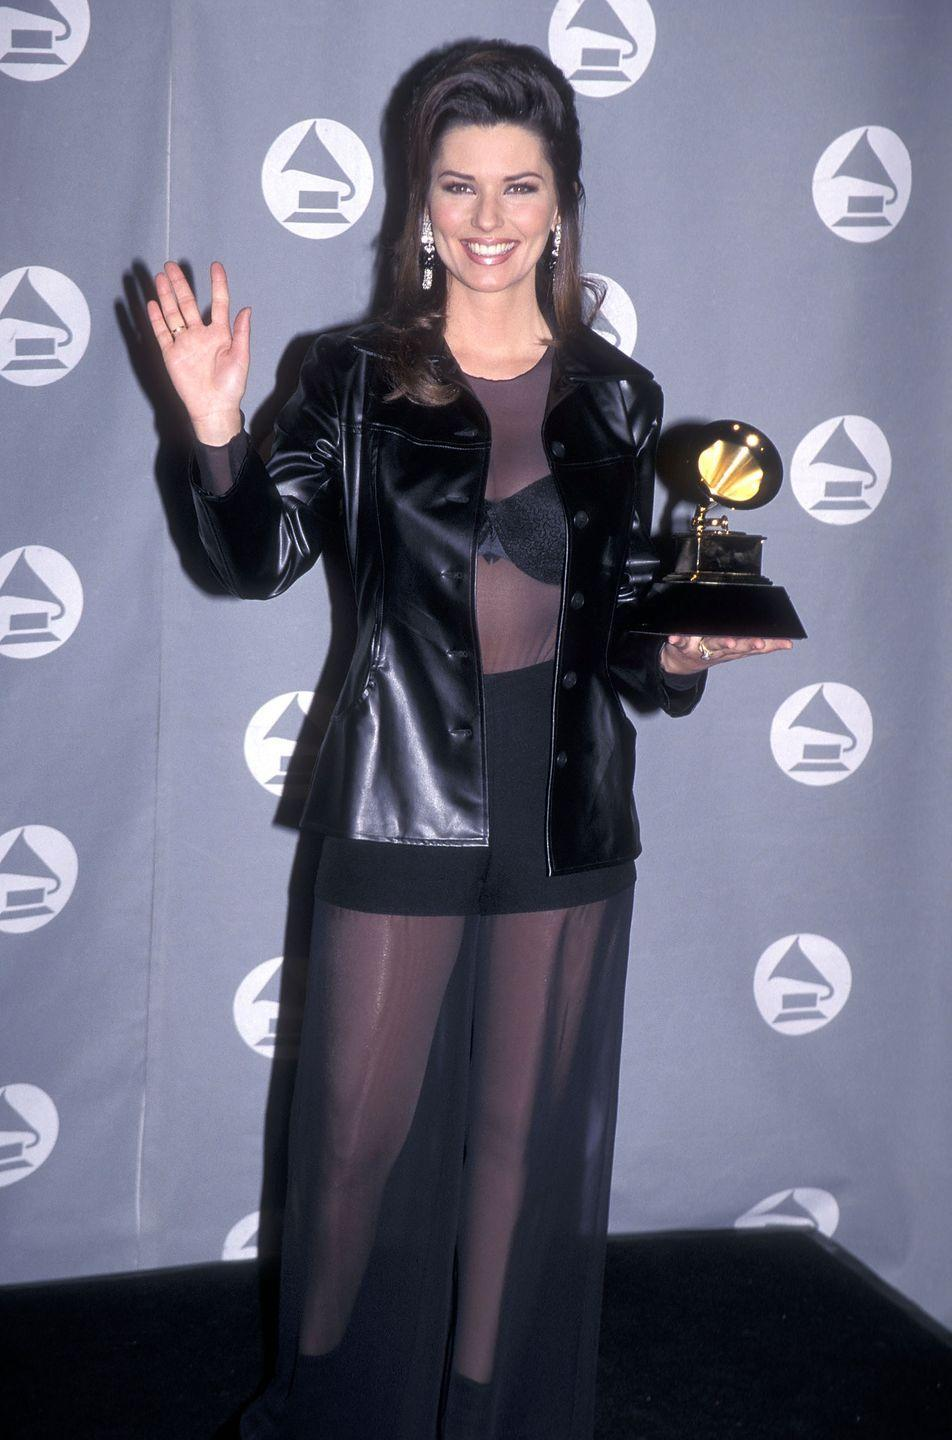 <p>Remember when Shania Twain went to the Grammys and wore an entirely sheer black dress over a black bra and shorts set with a black leather blazer? Yeah, we forgot about that too. <br></p>